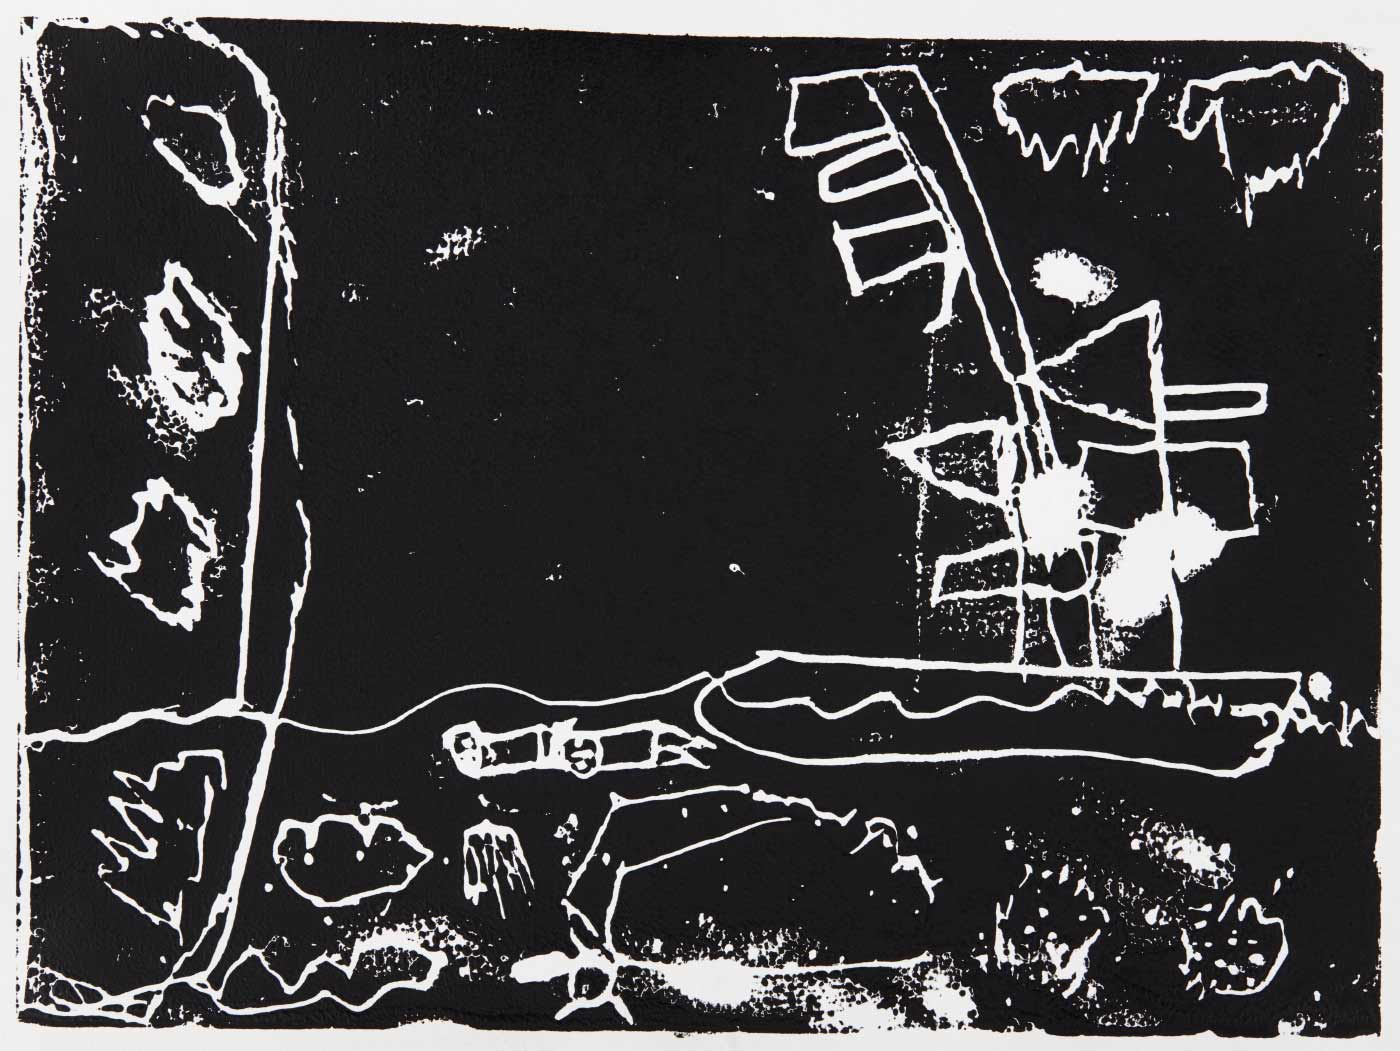 Print, black ink on white paper, depicting a ship on the water. Annotated in pencil 'Clay'. - click to view larger image